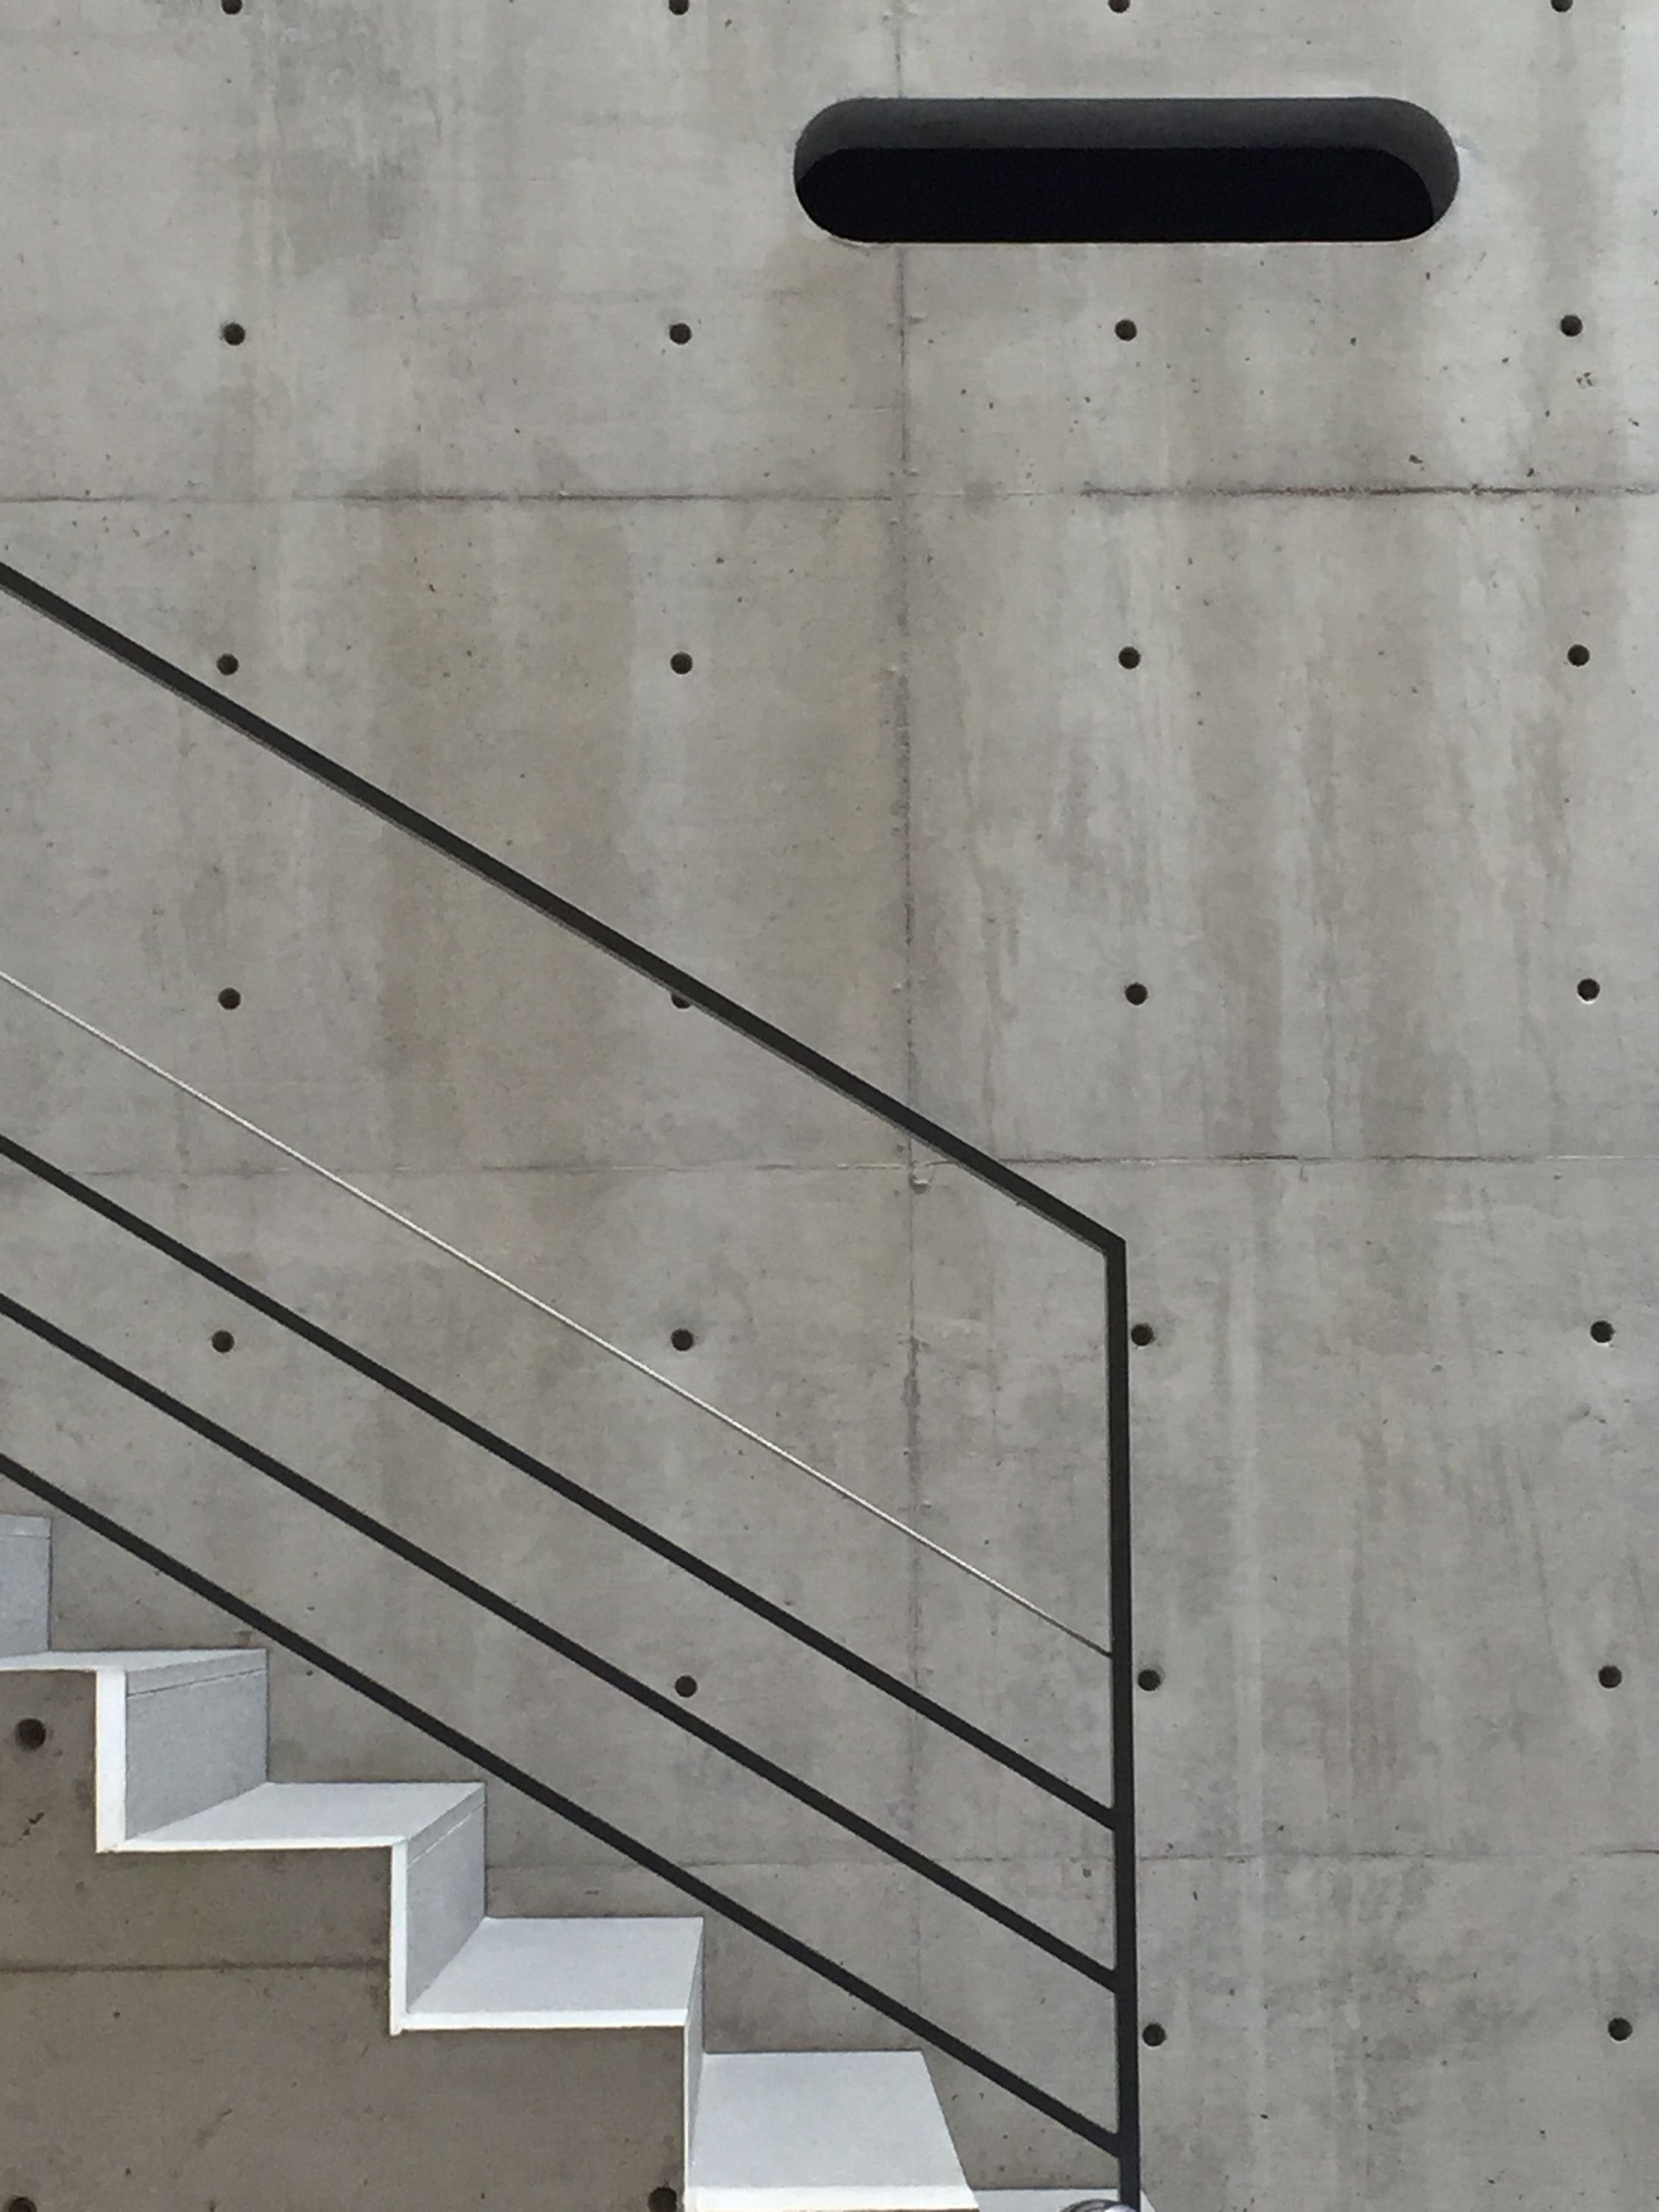 Contemporary Art Museum By Tadao Ando At Naoshima